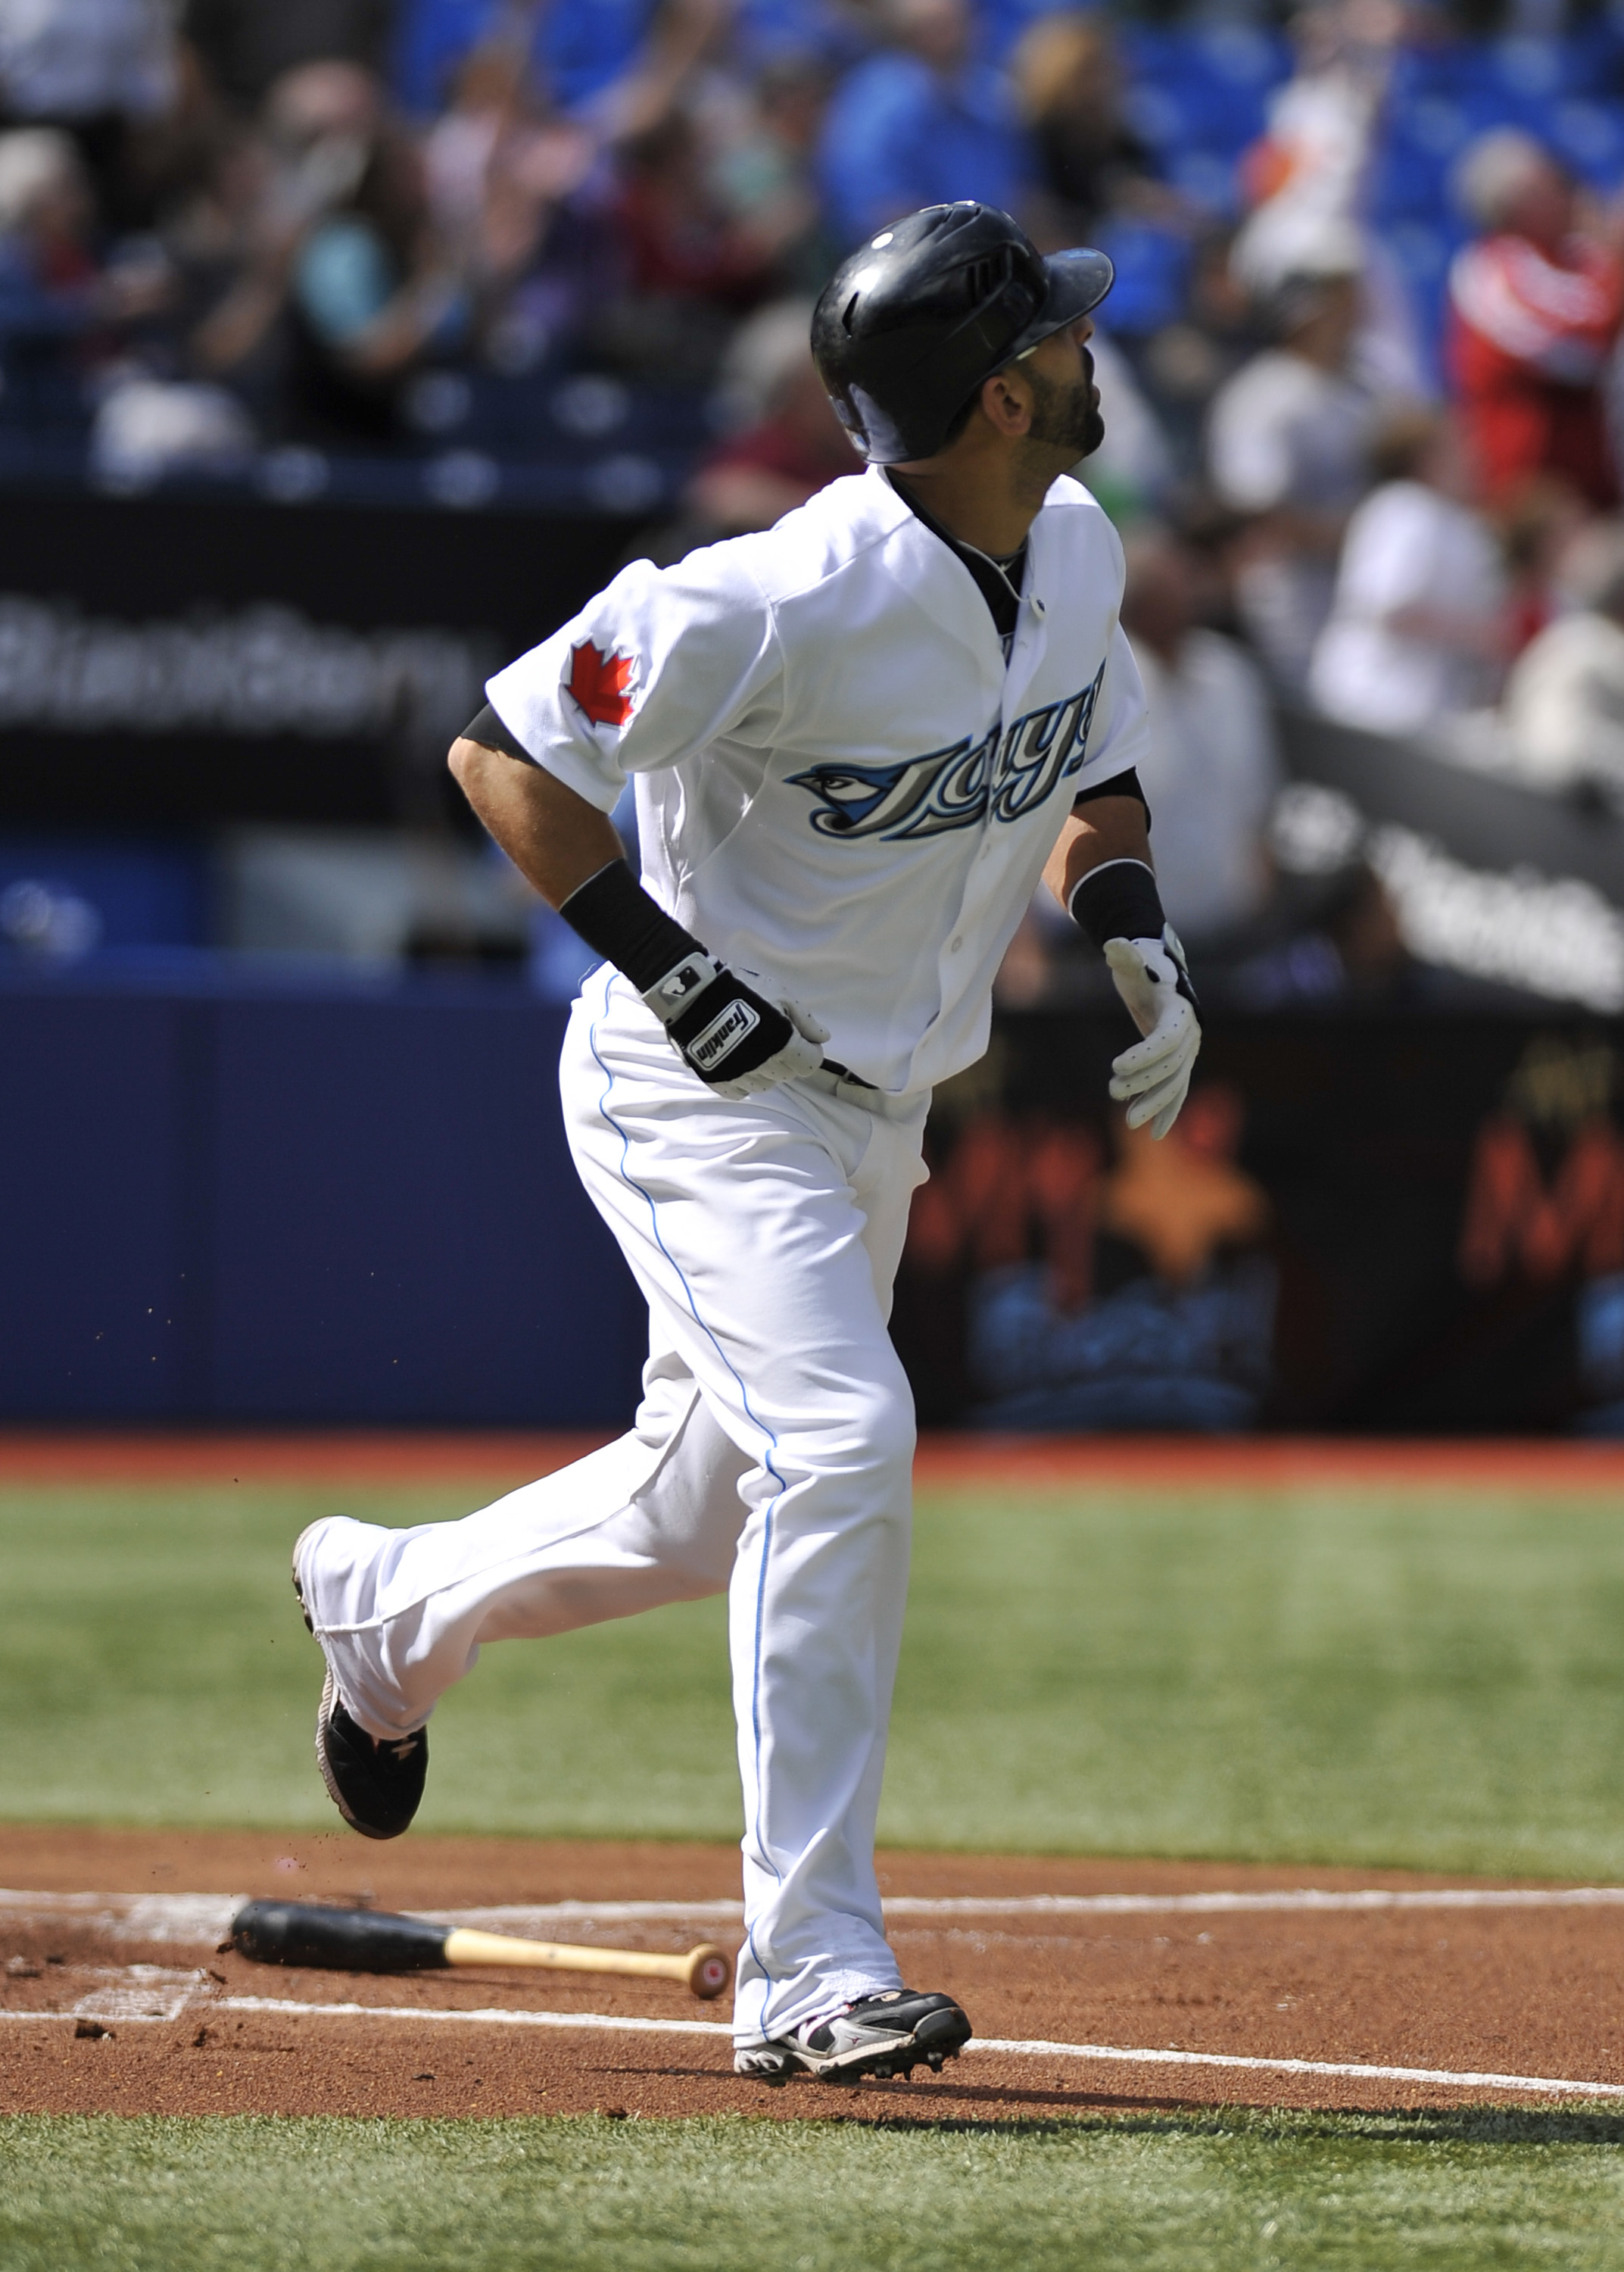 TORONTO - SEPTEMBER 23:   Jose Bautista #19 of the Toronto Blue Jays looks as his 50th home run of the season leaves the ball park during the game against the Seattle Mariners on September 23, 2010 at Rogers Centre in Toronto, Ontario, Canada. The Blue Ja